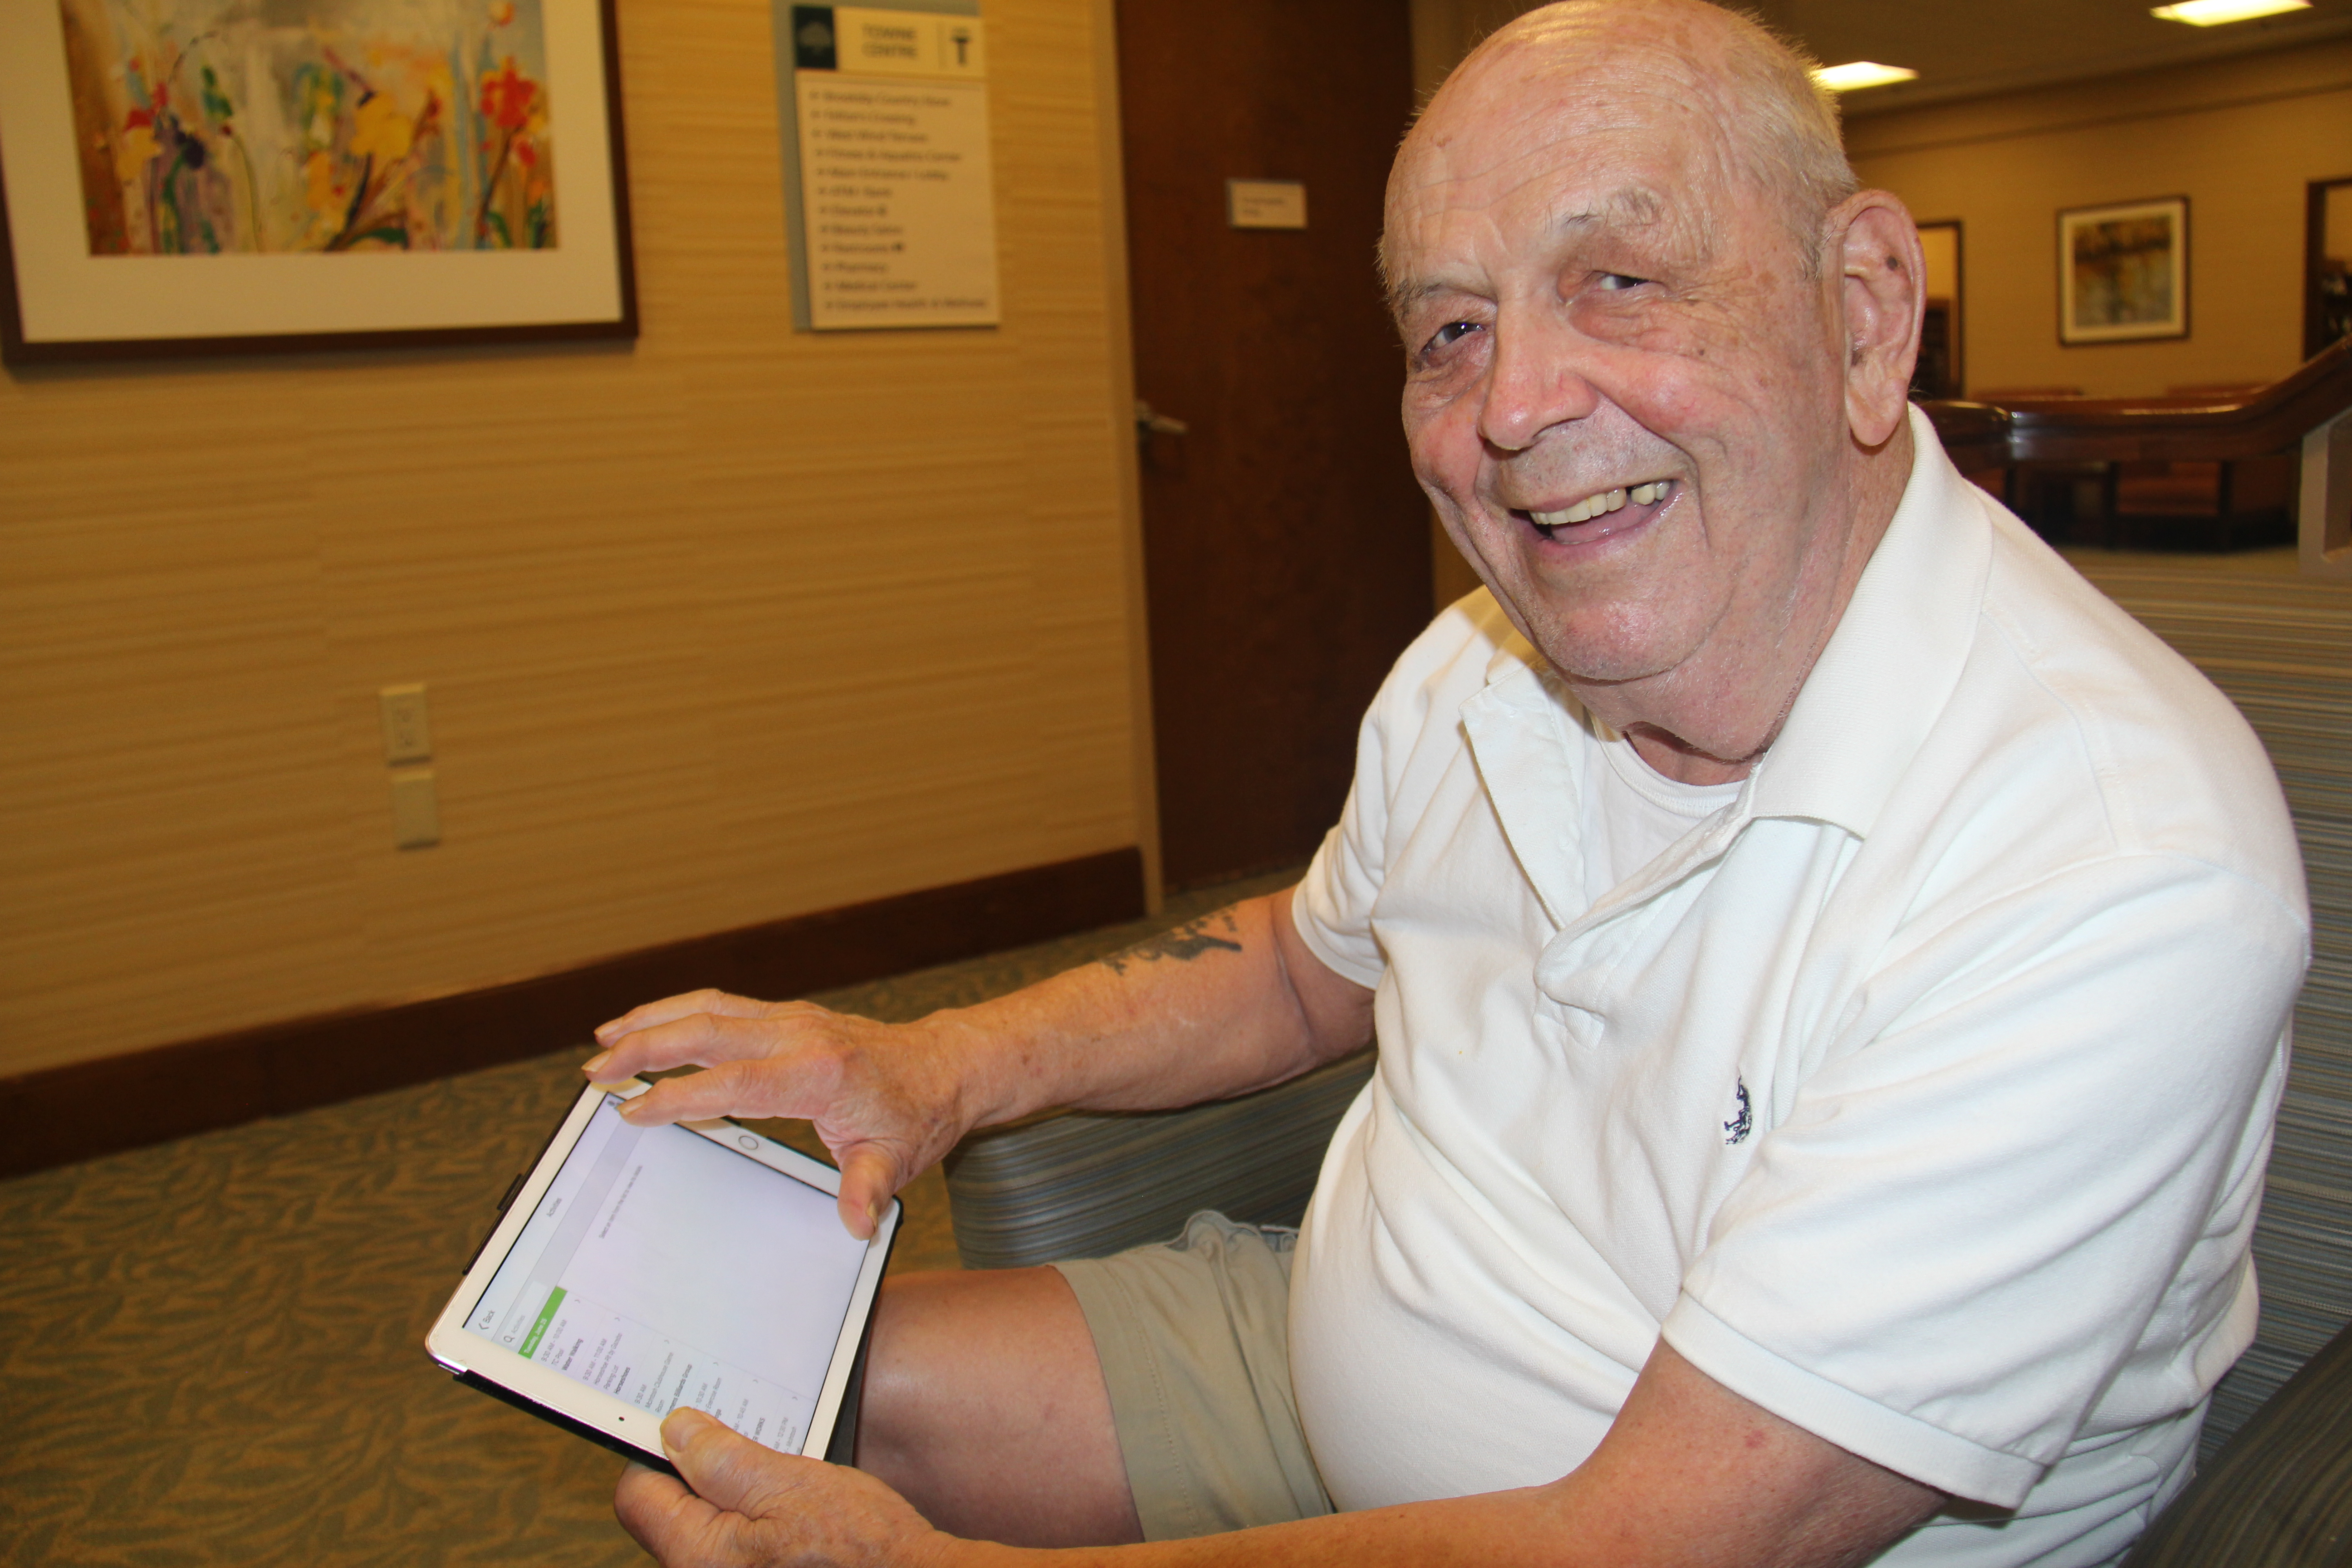 Photo caption: Larry Denis uses a variety of web-based solutions to support his active lifestyle at Brooksby Village, including the MyErickson app, a tool that provides immediate access to the programs and services offered at the Peabody community.